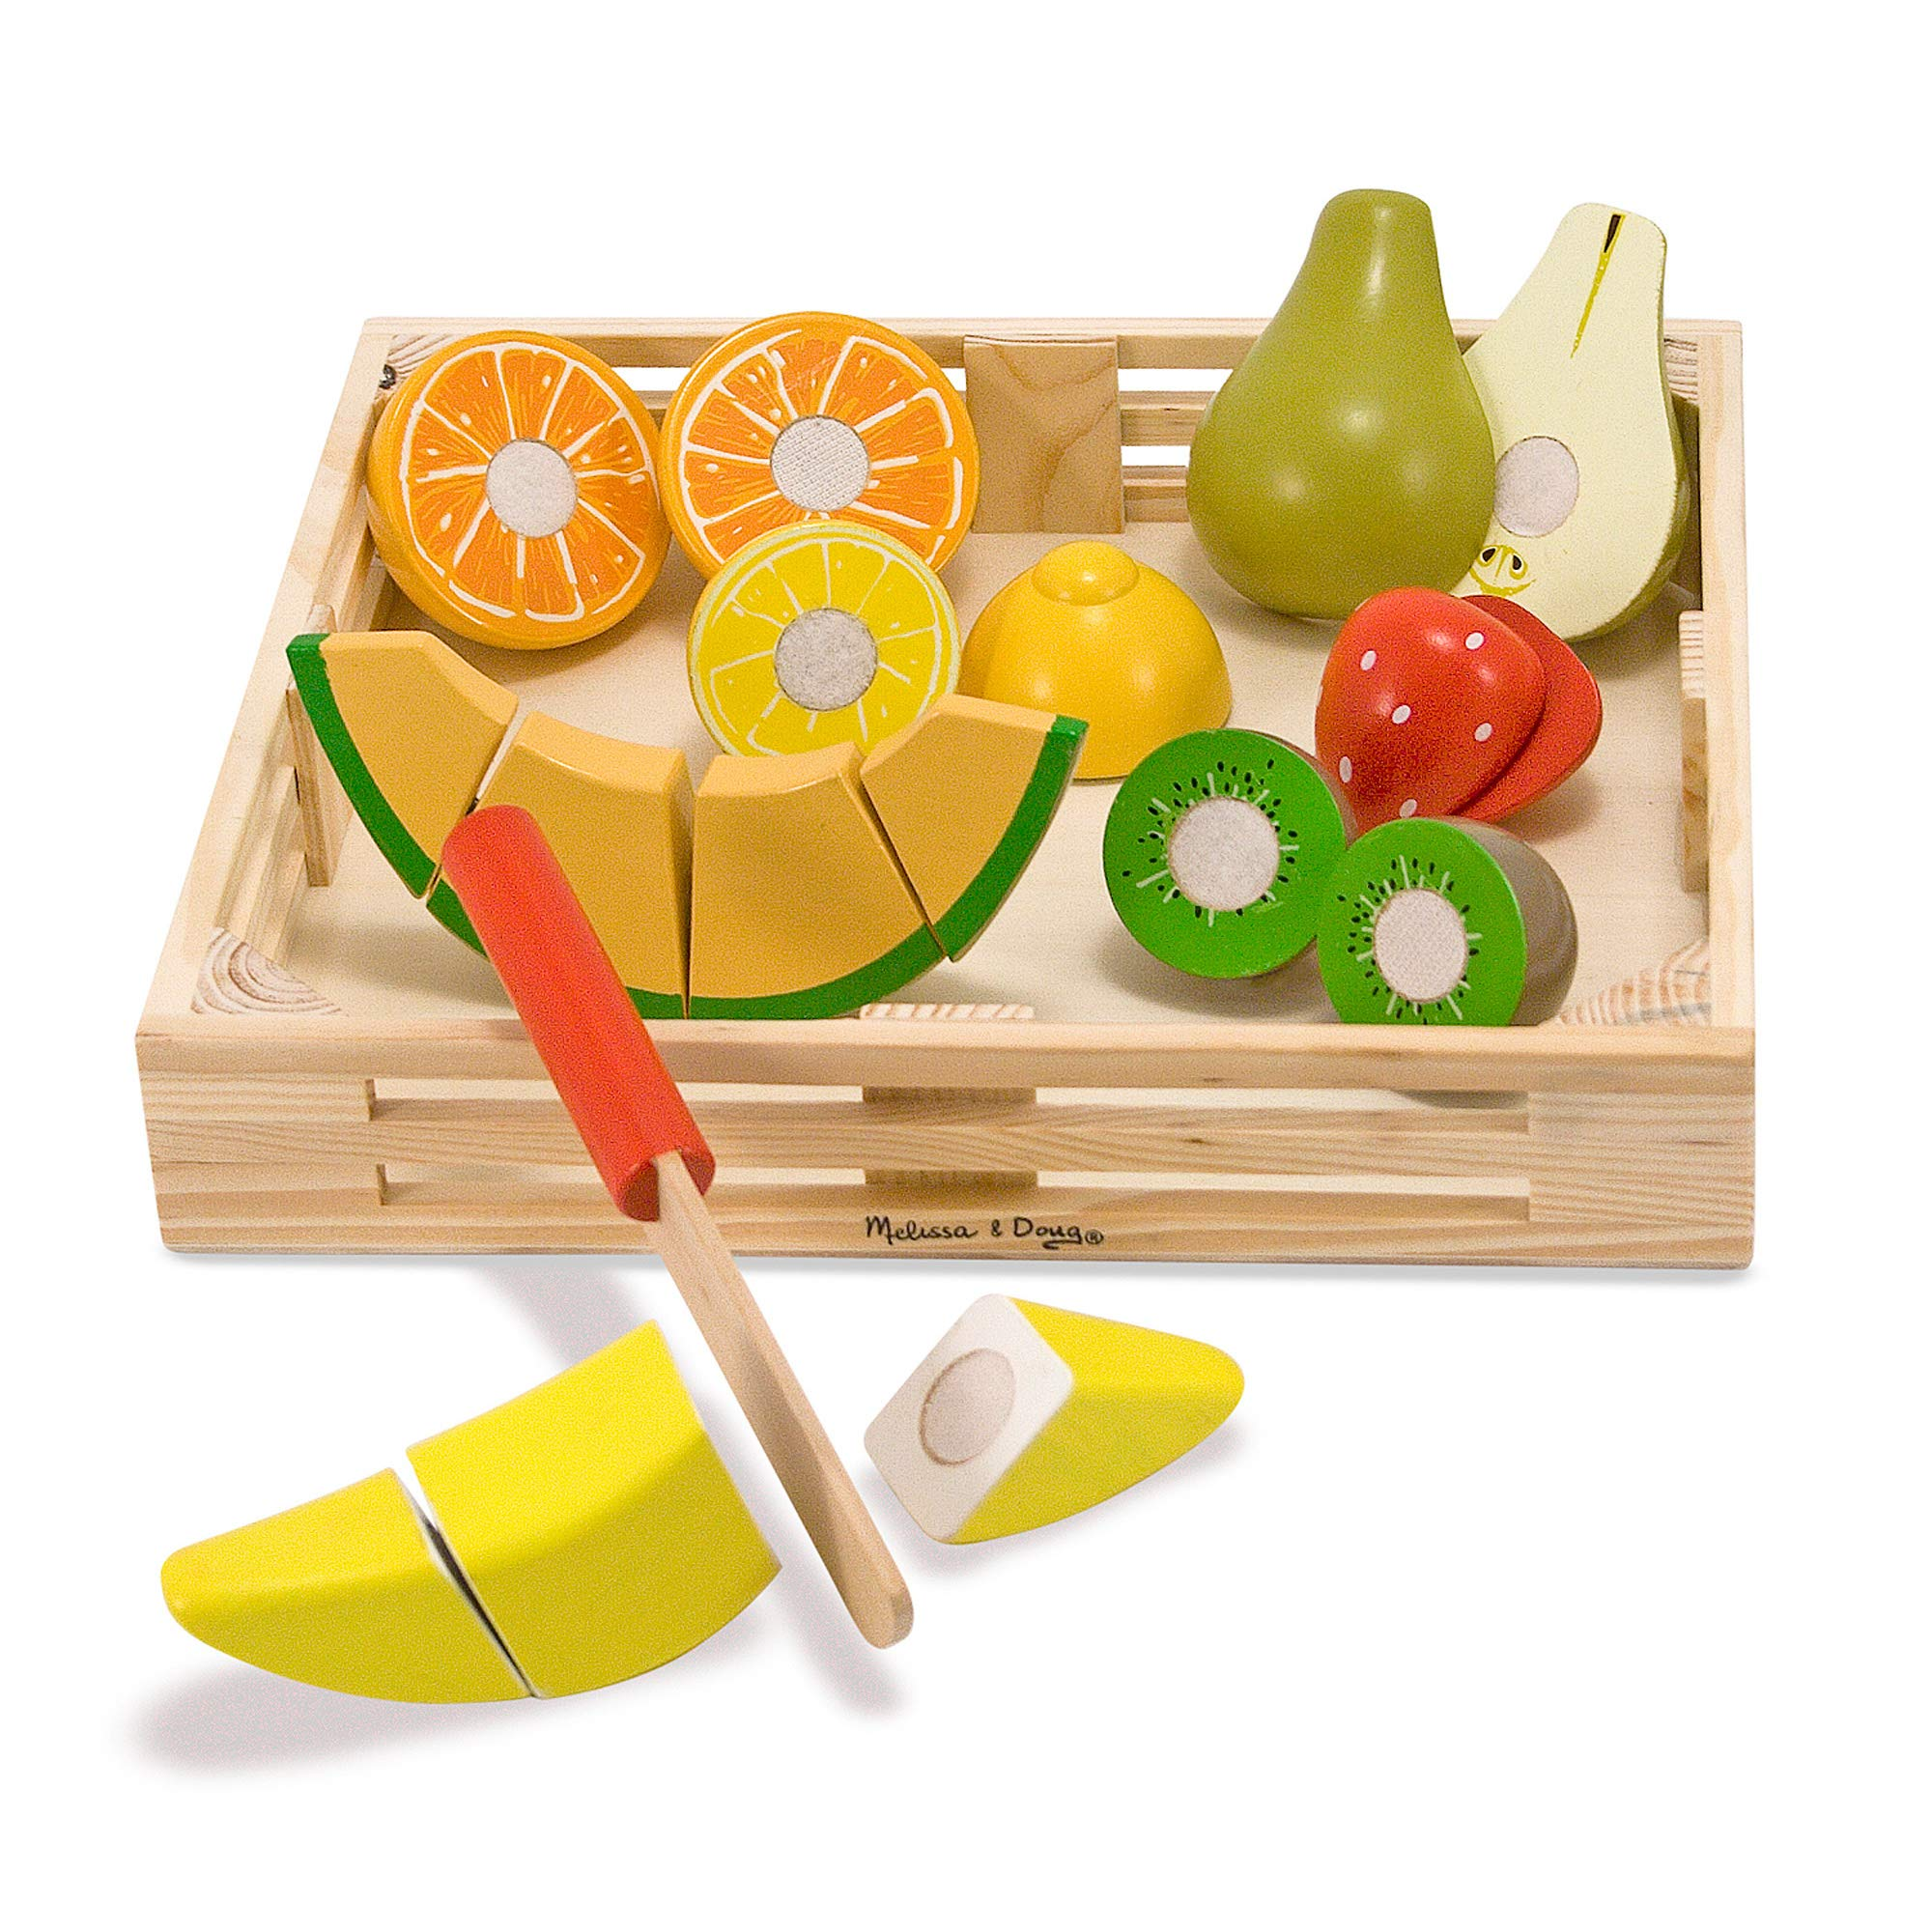 Melissa & Doug Cutting Fruit Set (Wooden Play Food, Attractive Wooden Crate, Introduces Part and Whole Concepts, 17-Piece Set) by Melissa & Doug